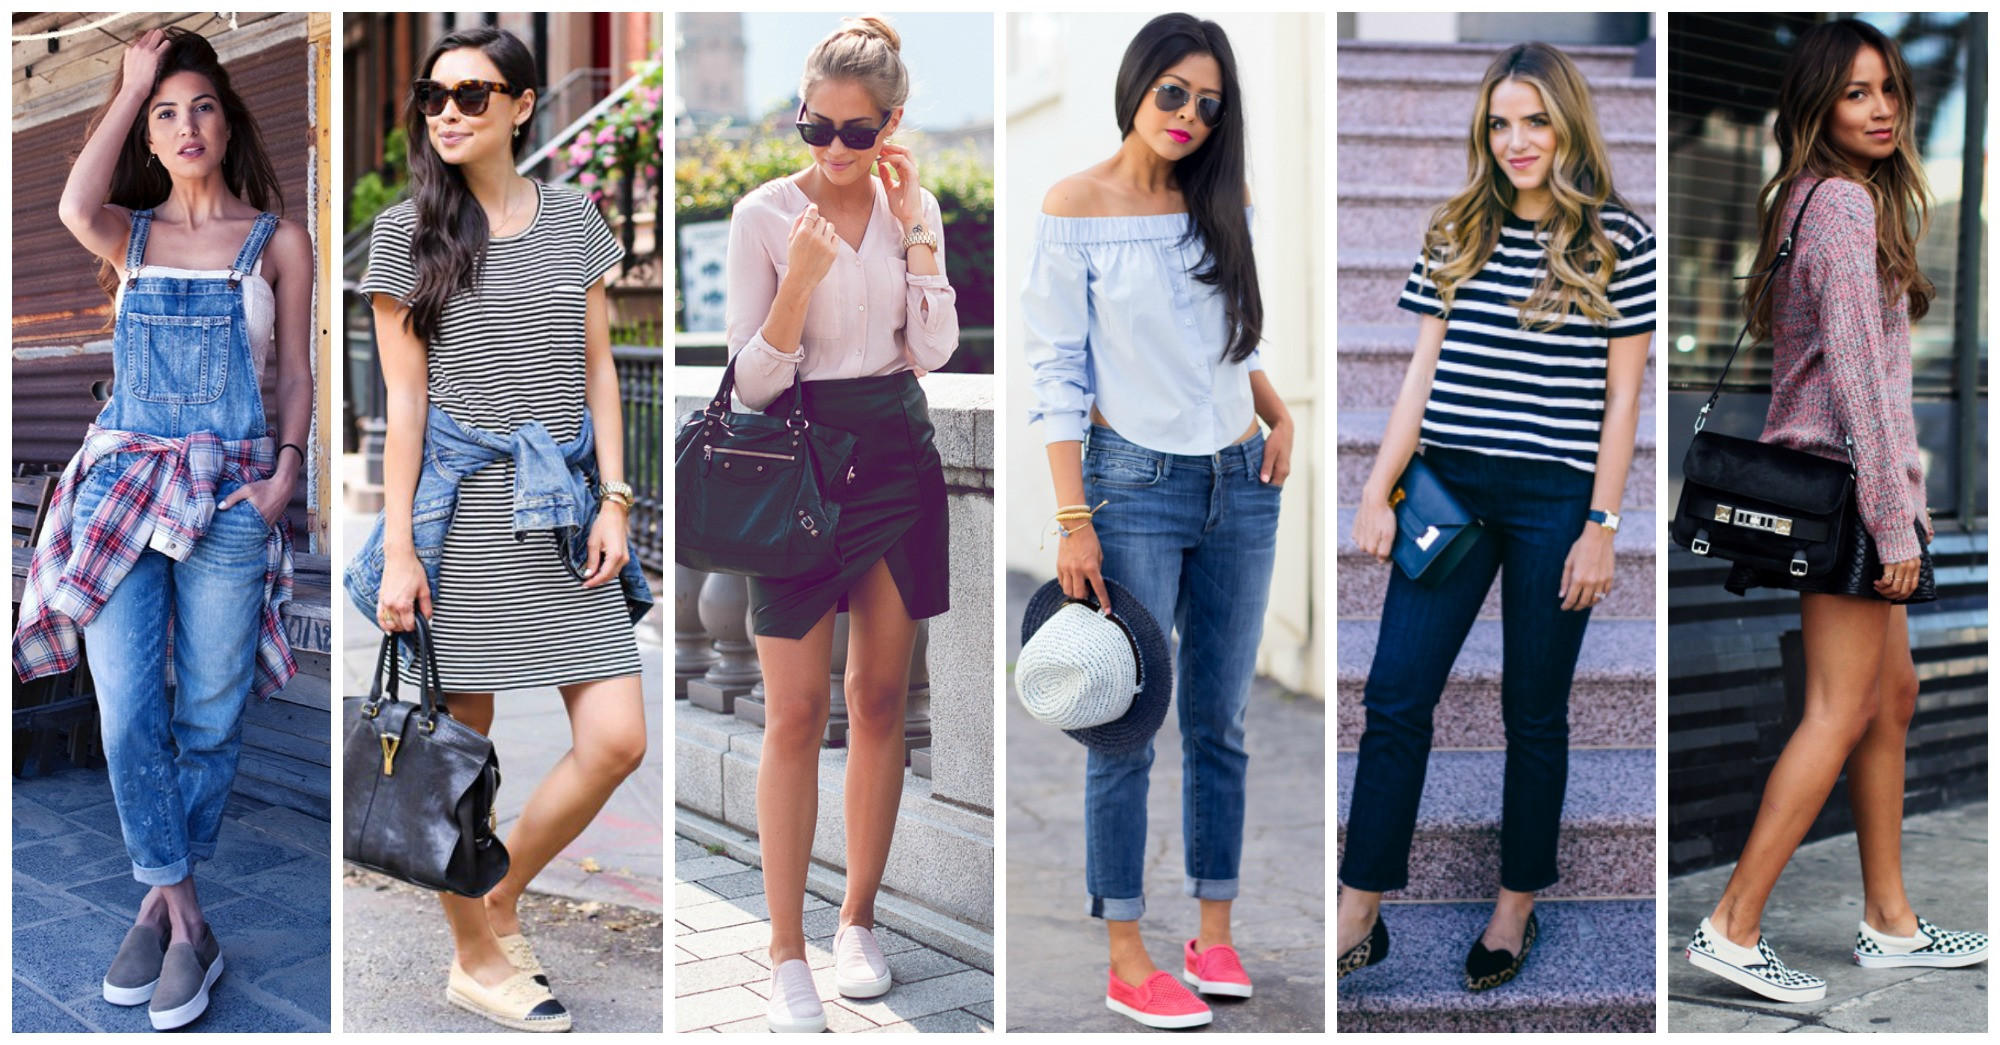 17 Fashionable Ways to Wear Slip On Sneakers In Spring